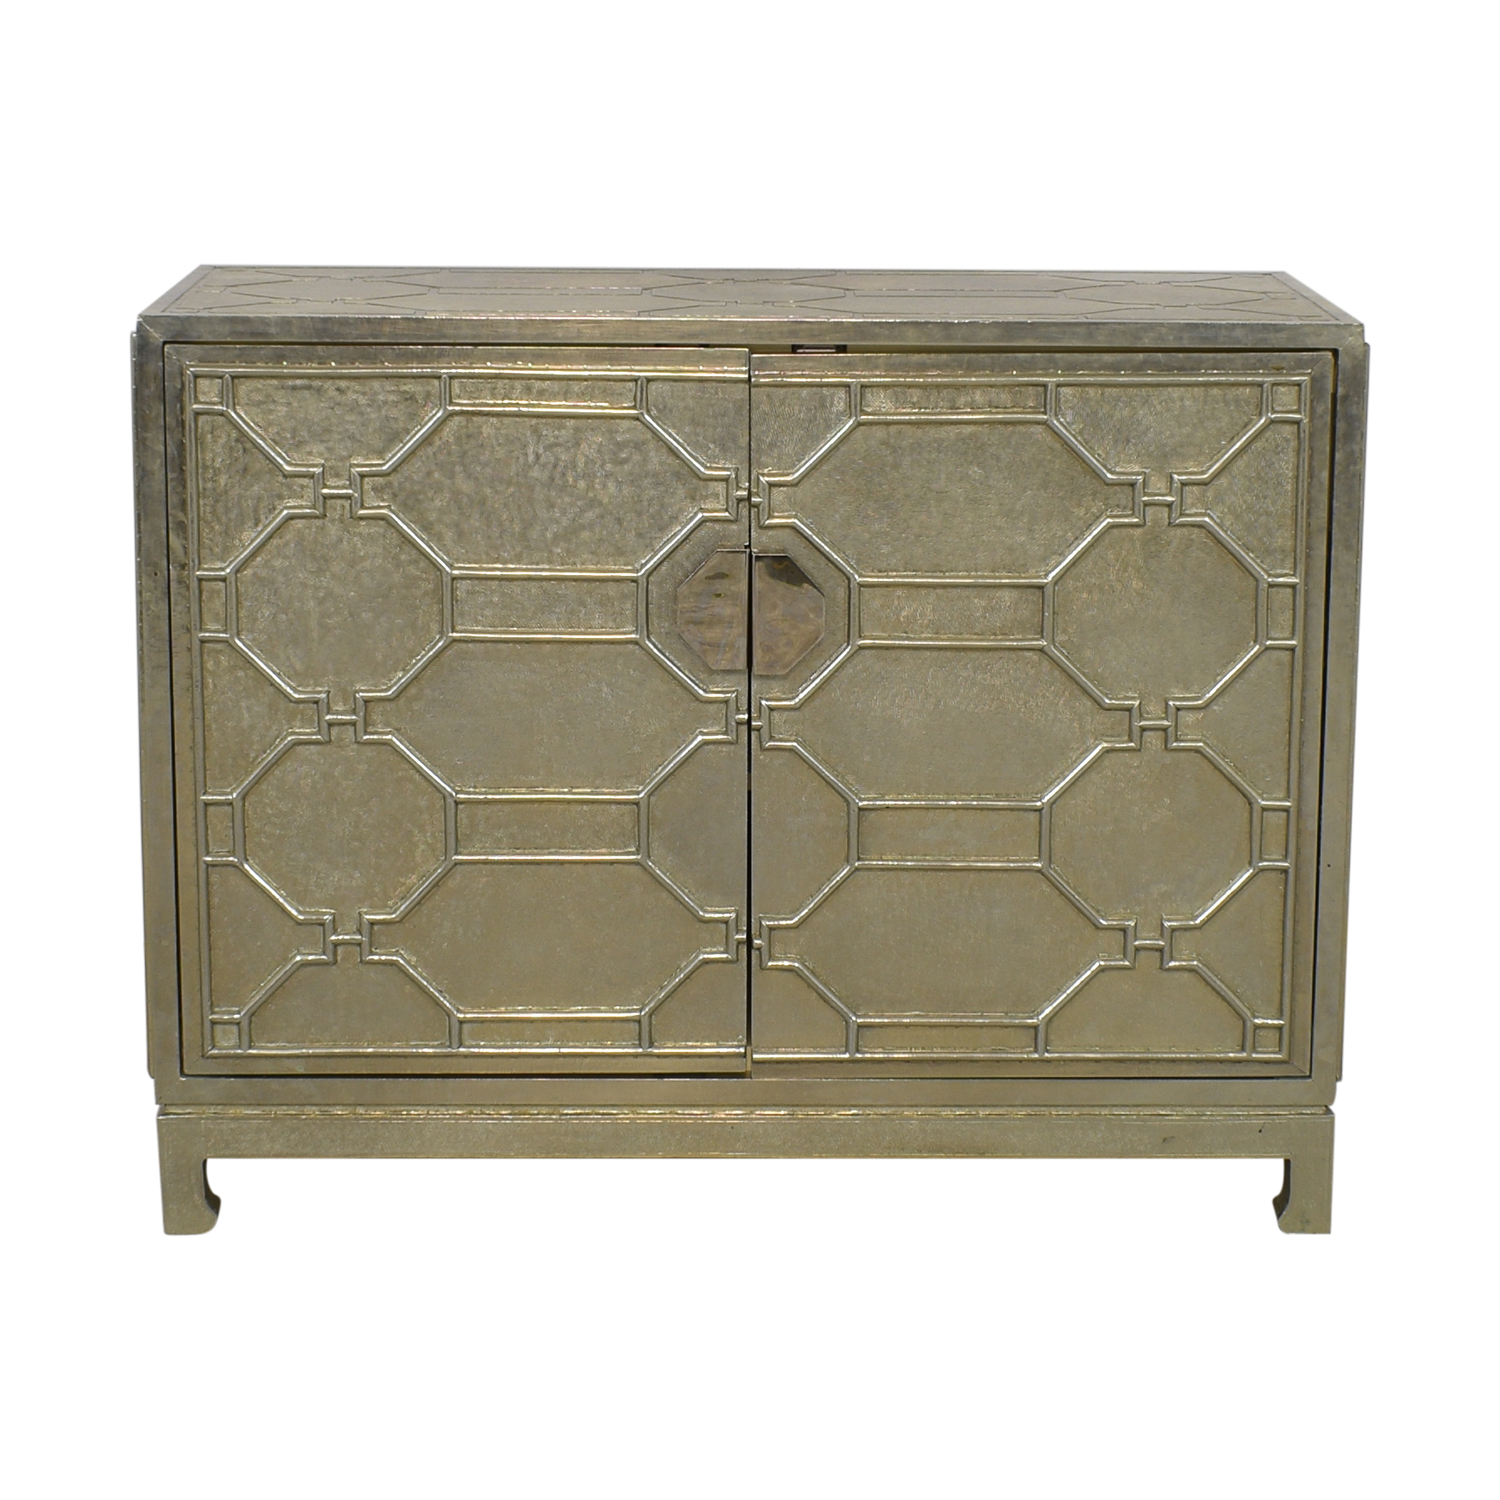 Brownstone Furniture Brownstone Furniture Treviso German Chest Cabinet silver